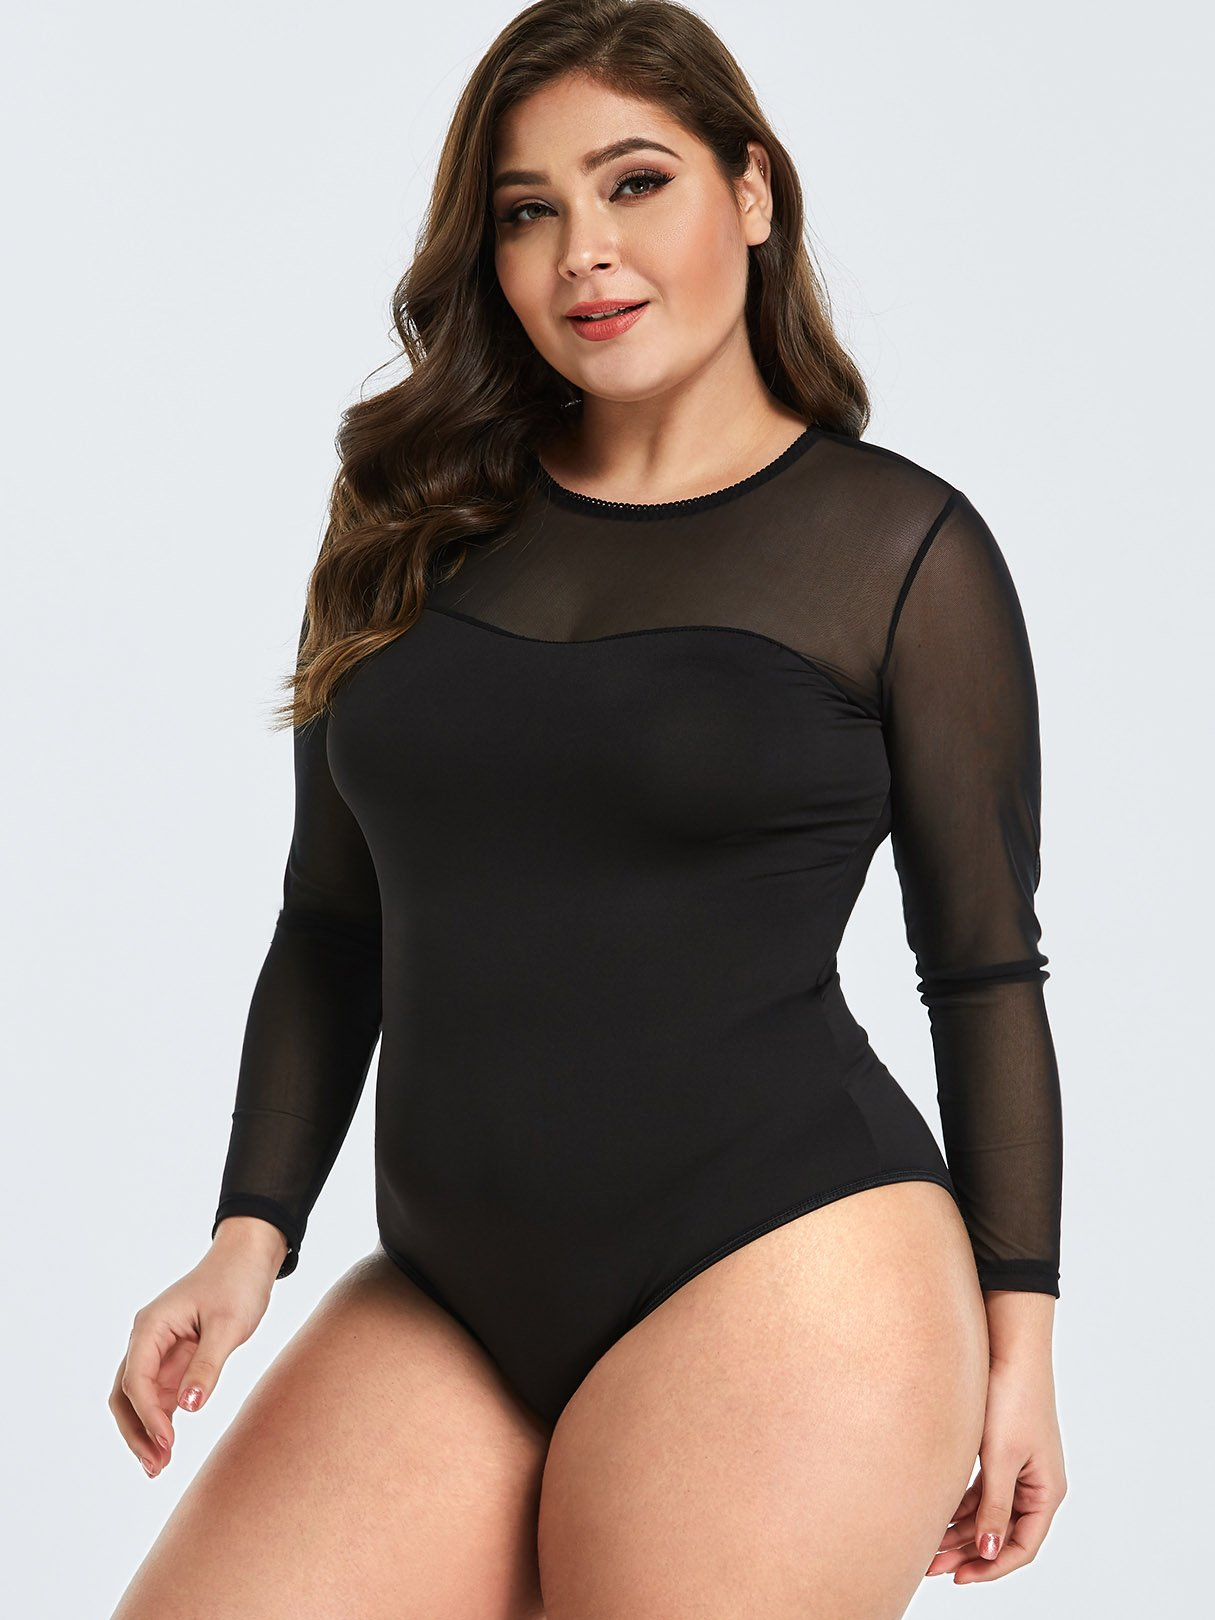 Plus Size Intimates